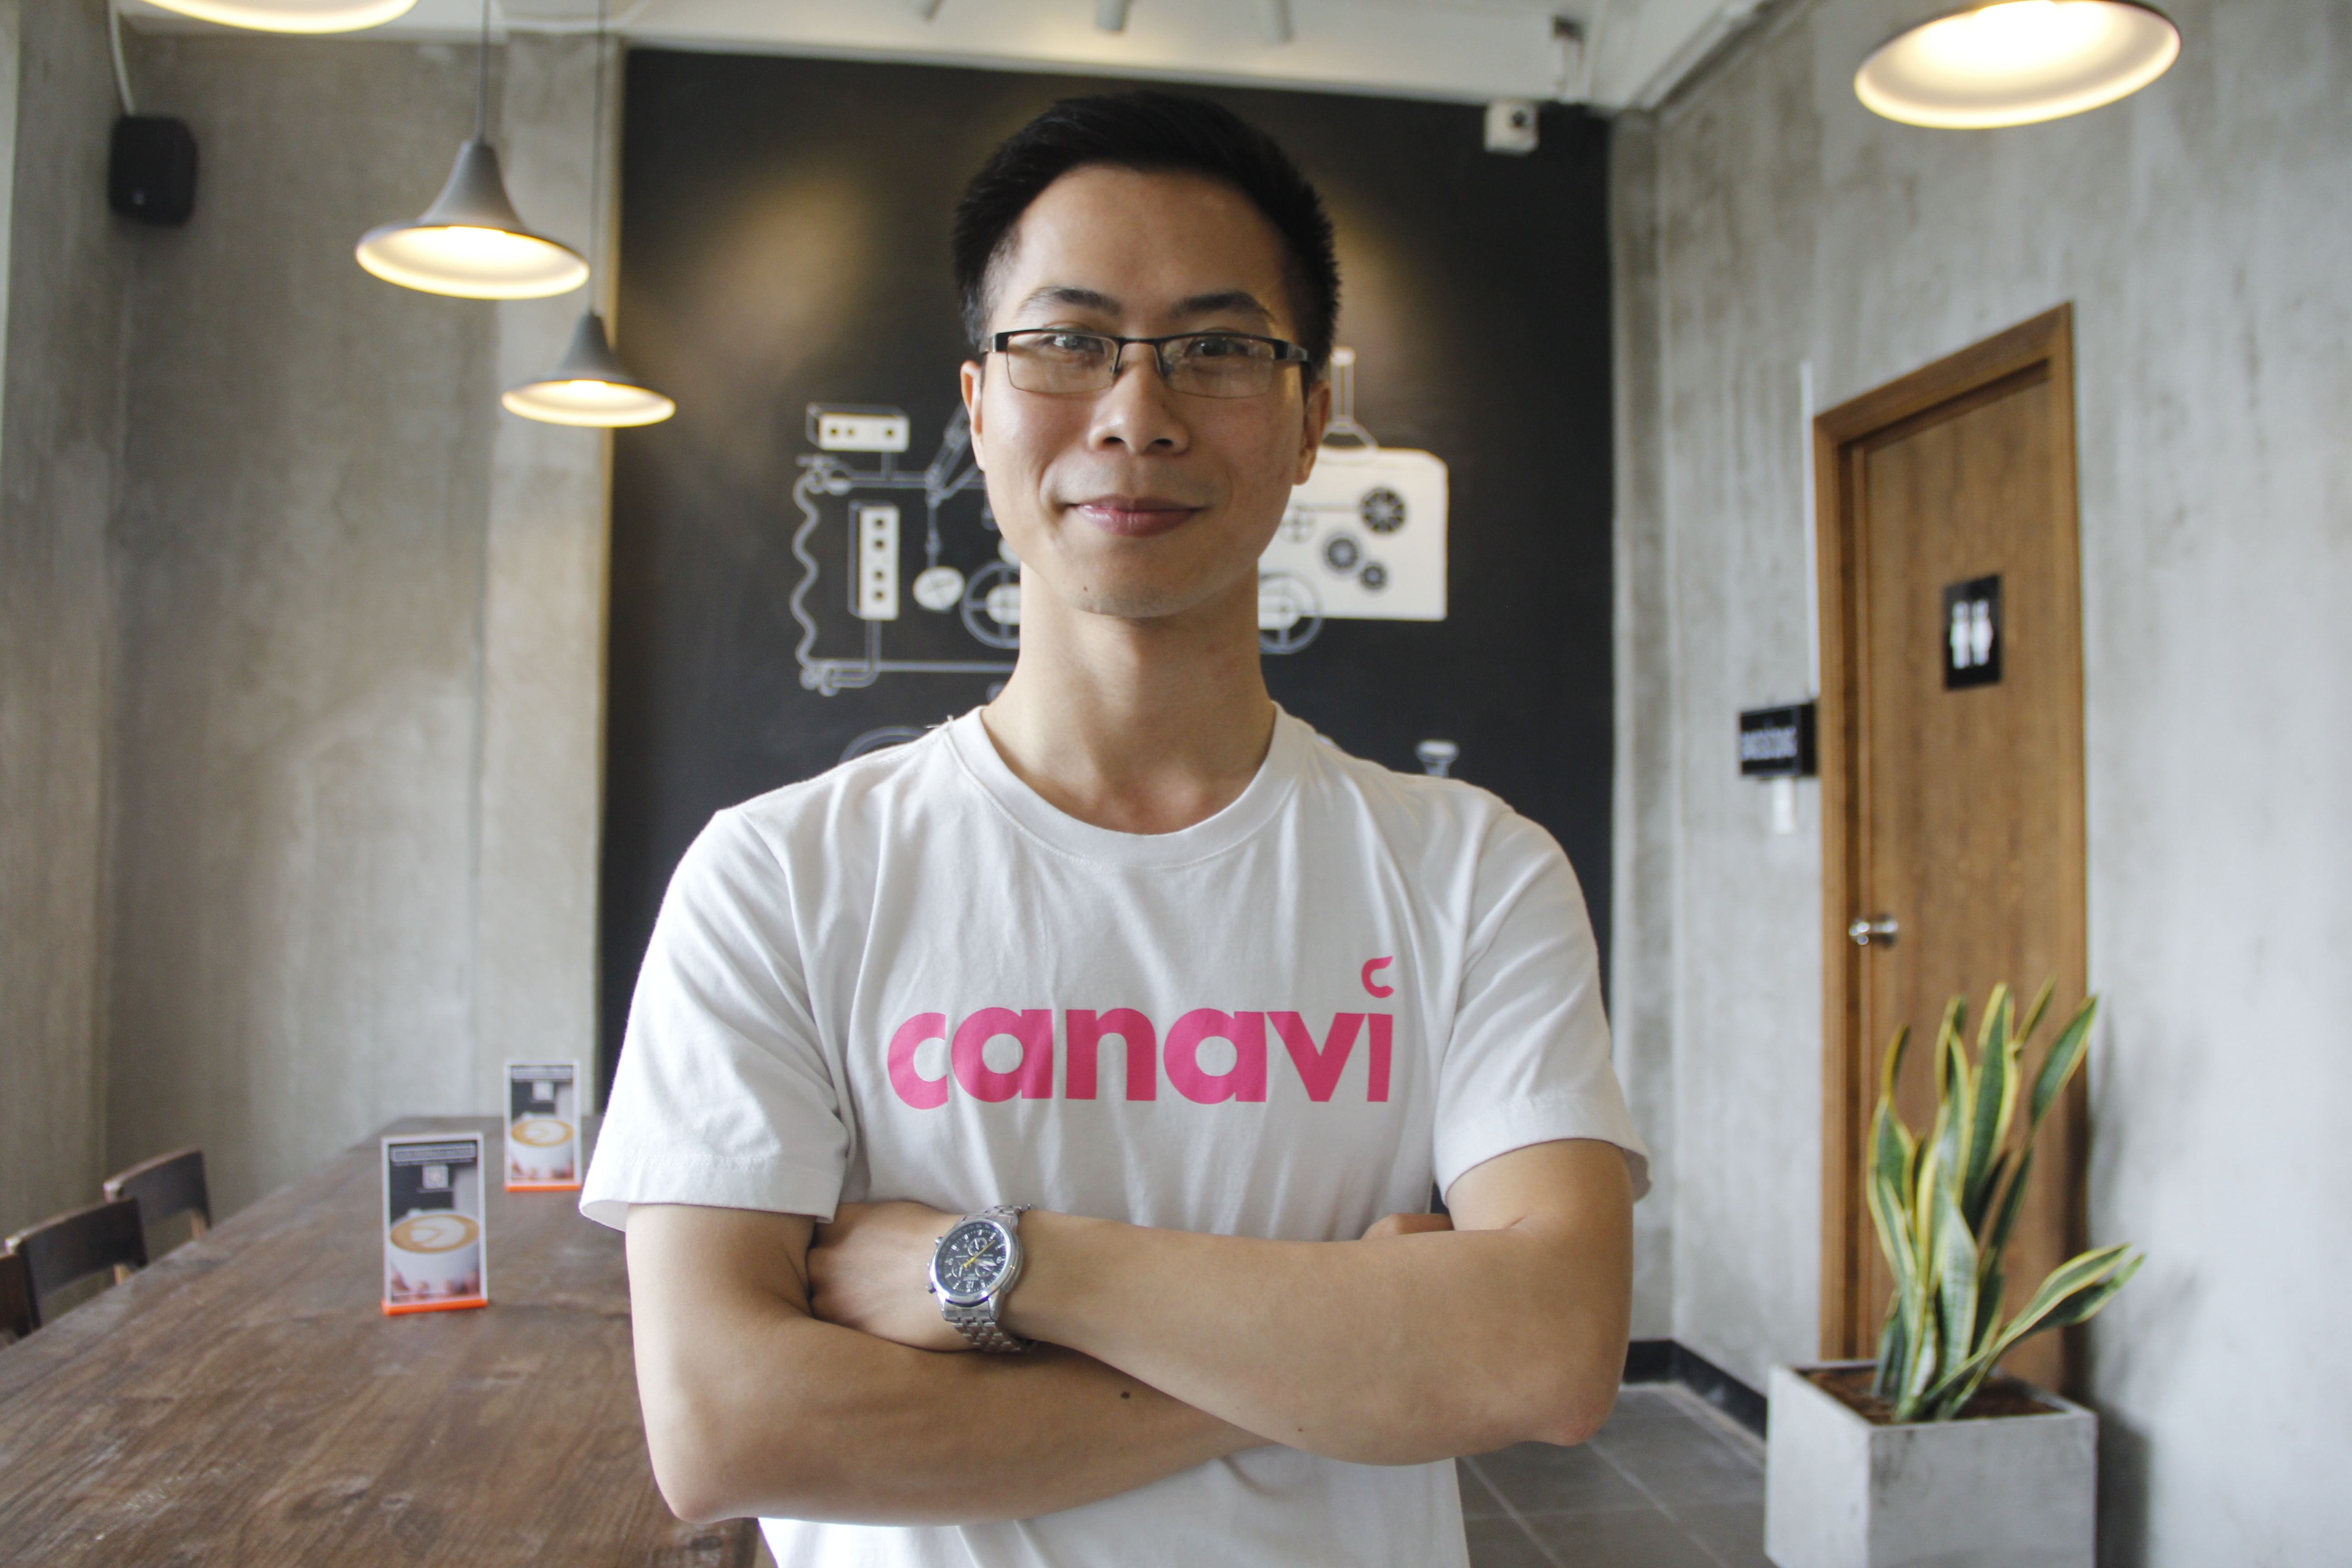 Cafe cùng founders: Anh Nguyễn Hoàng Hải, CEO của Canavi